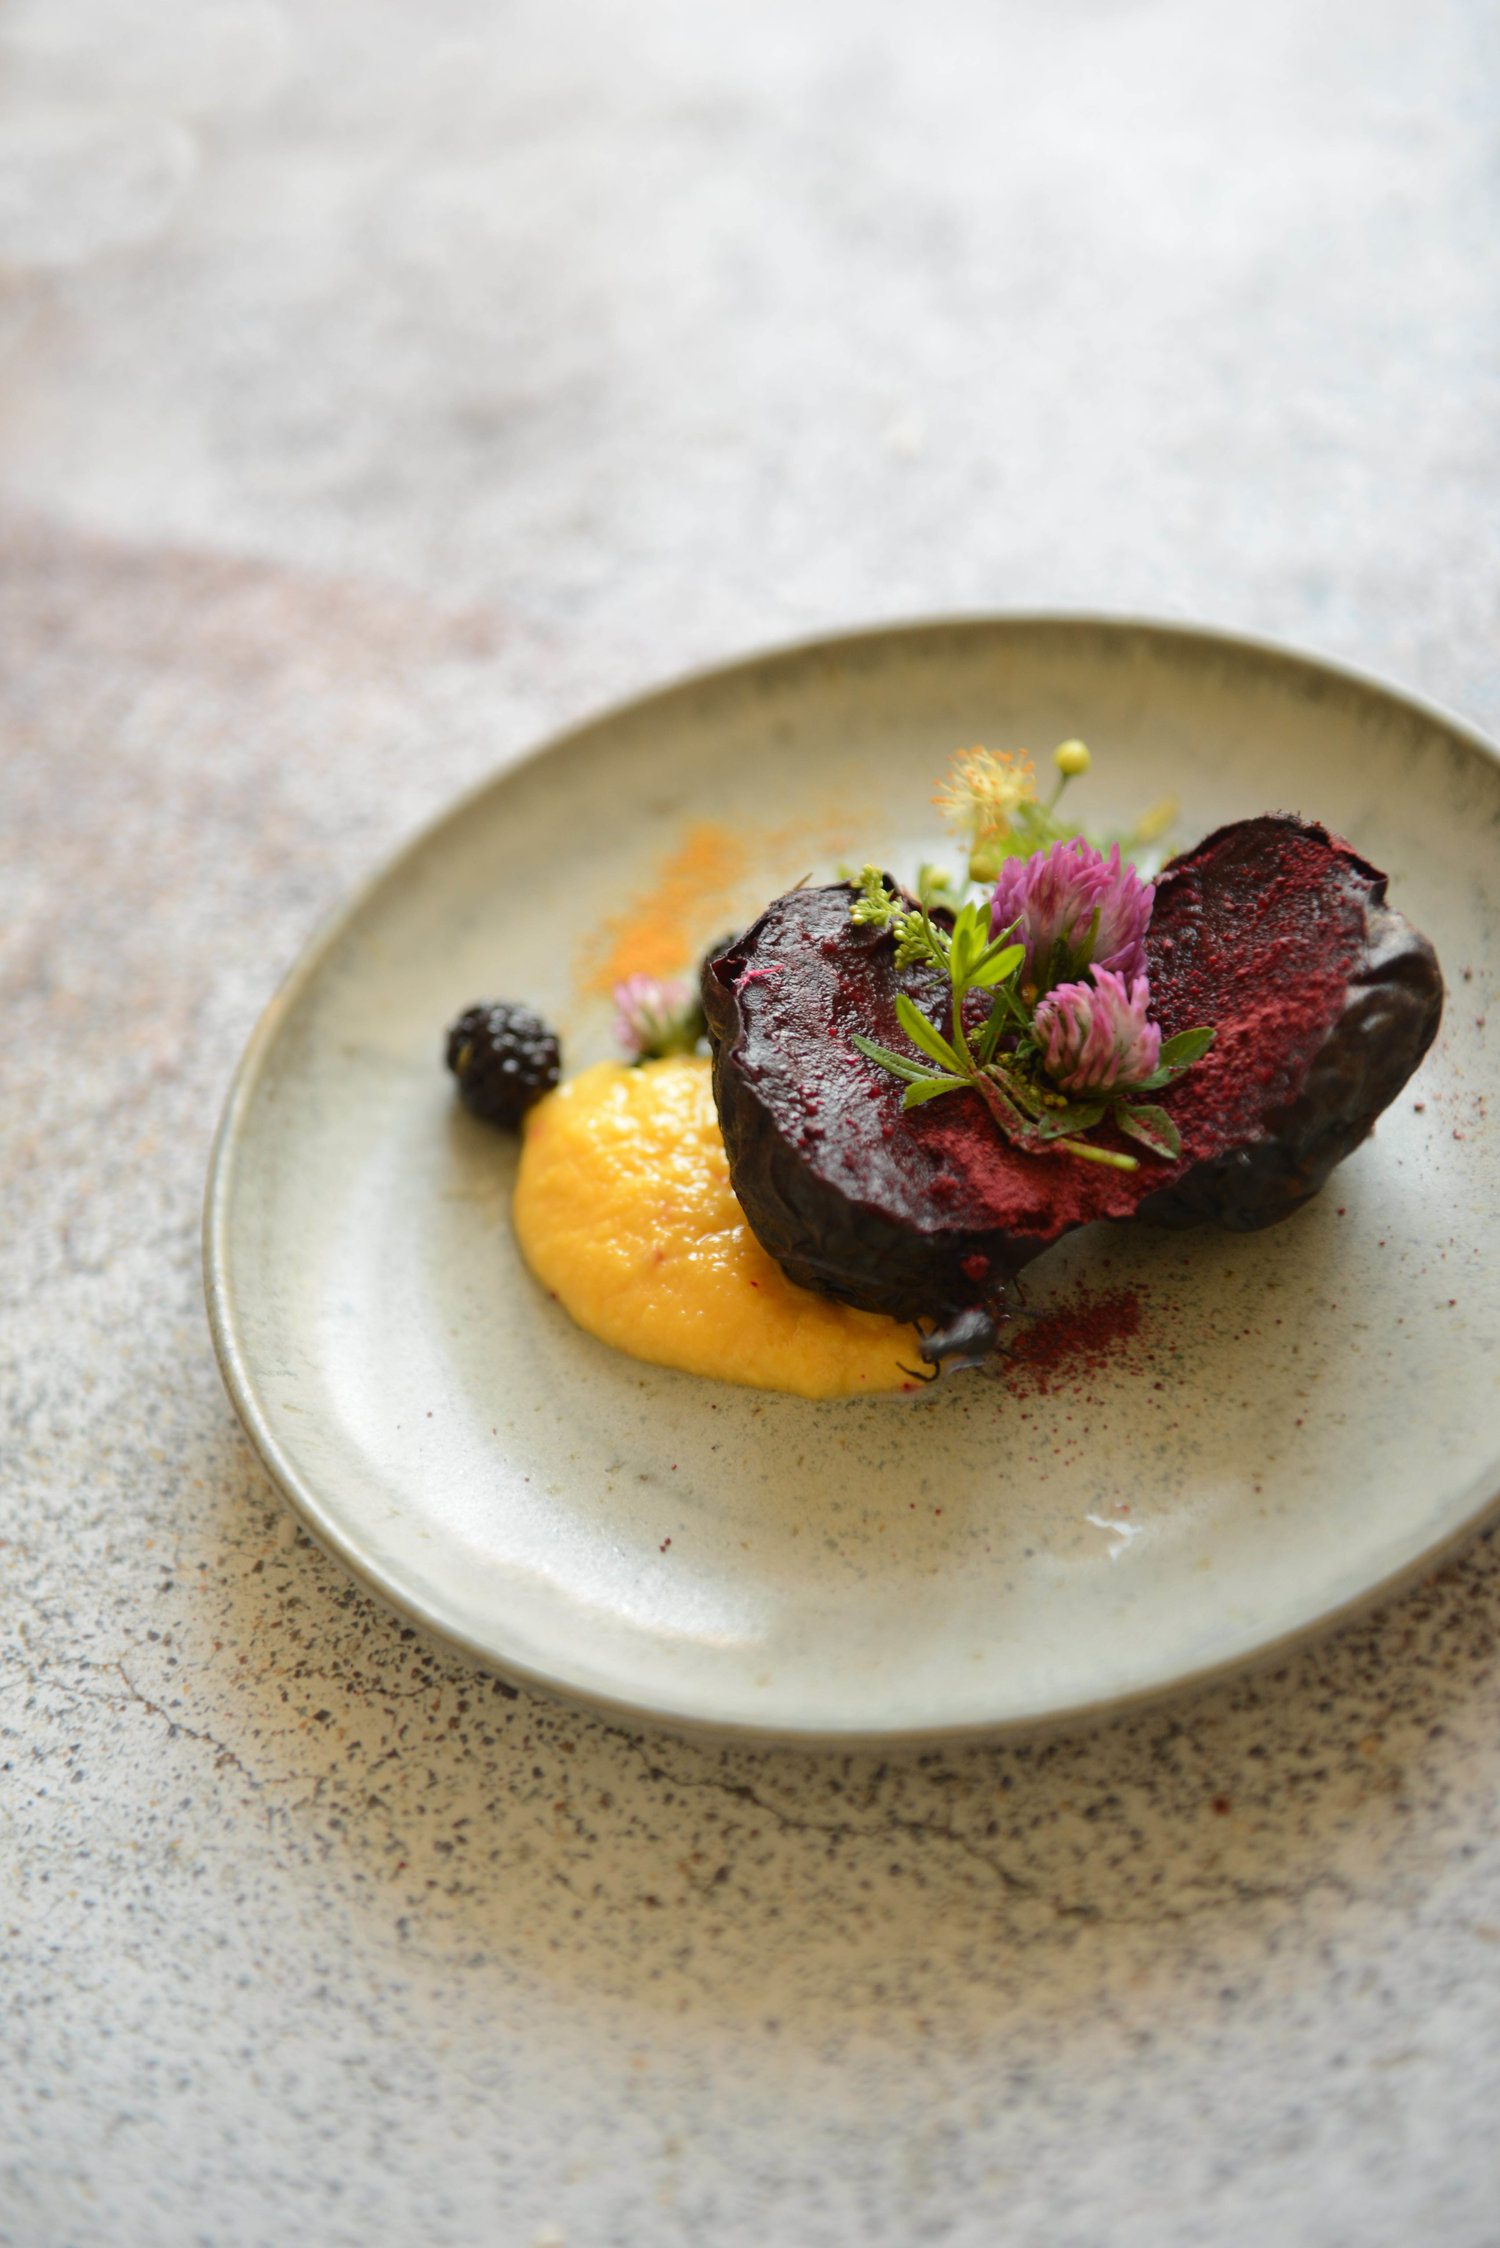 Baked beetroot, pumpkin puree, flowers and berries, orange salt